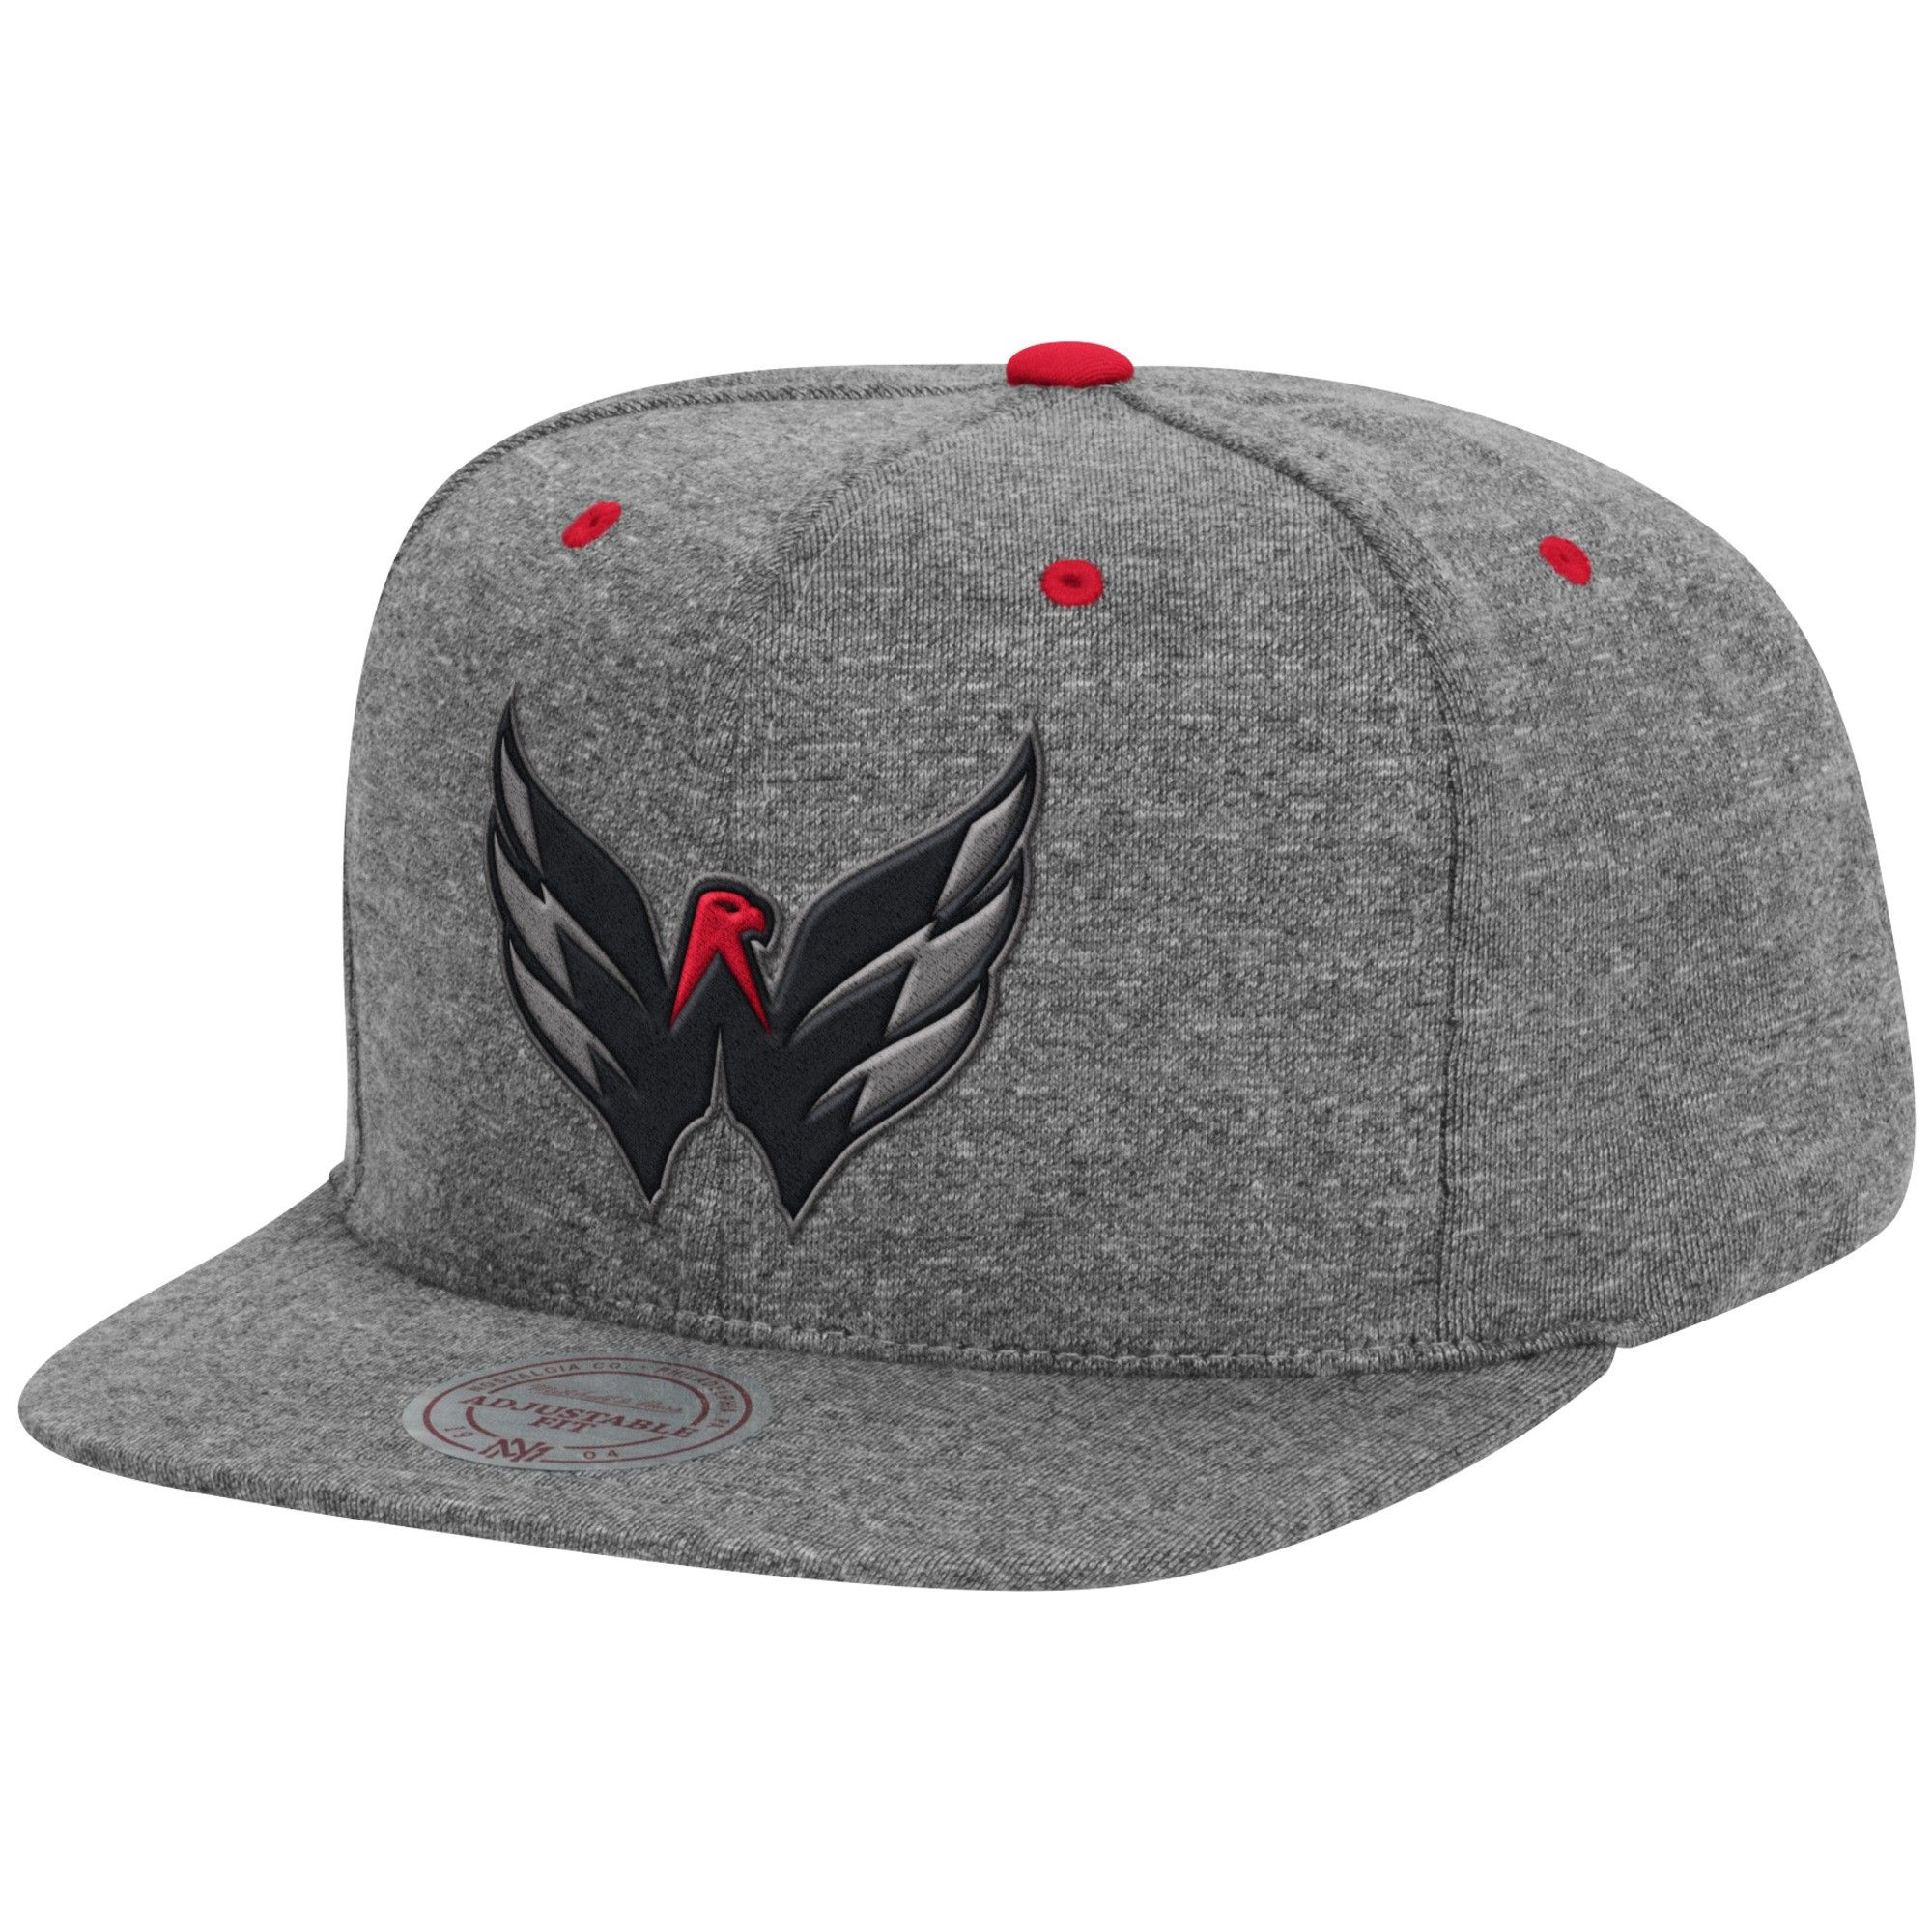 49a9fb989 Broad St 2.0 Snapback Washington Capitals - $30.00 | hats | Snapback ...